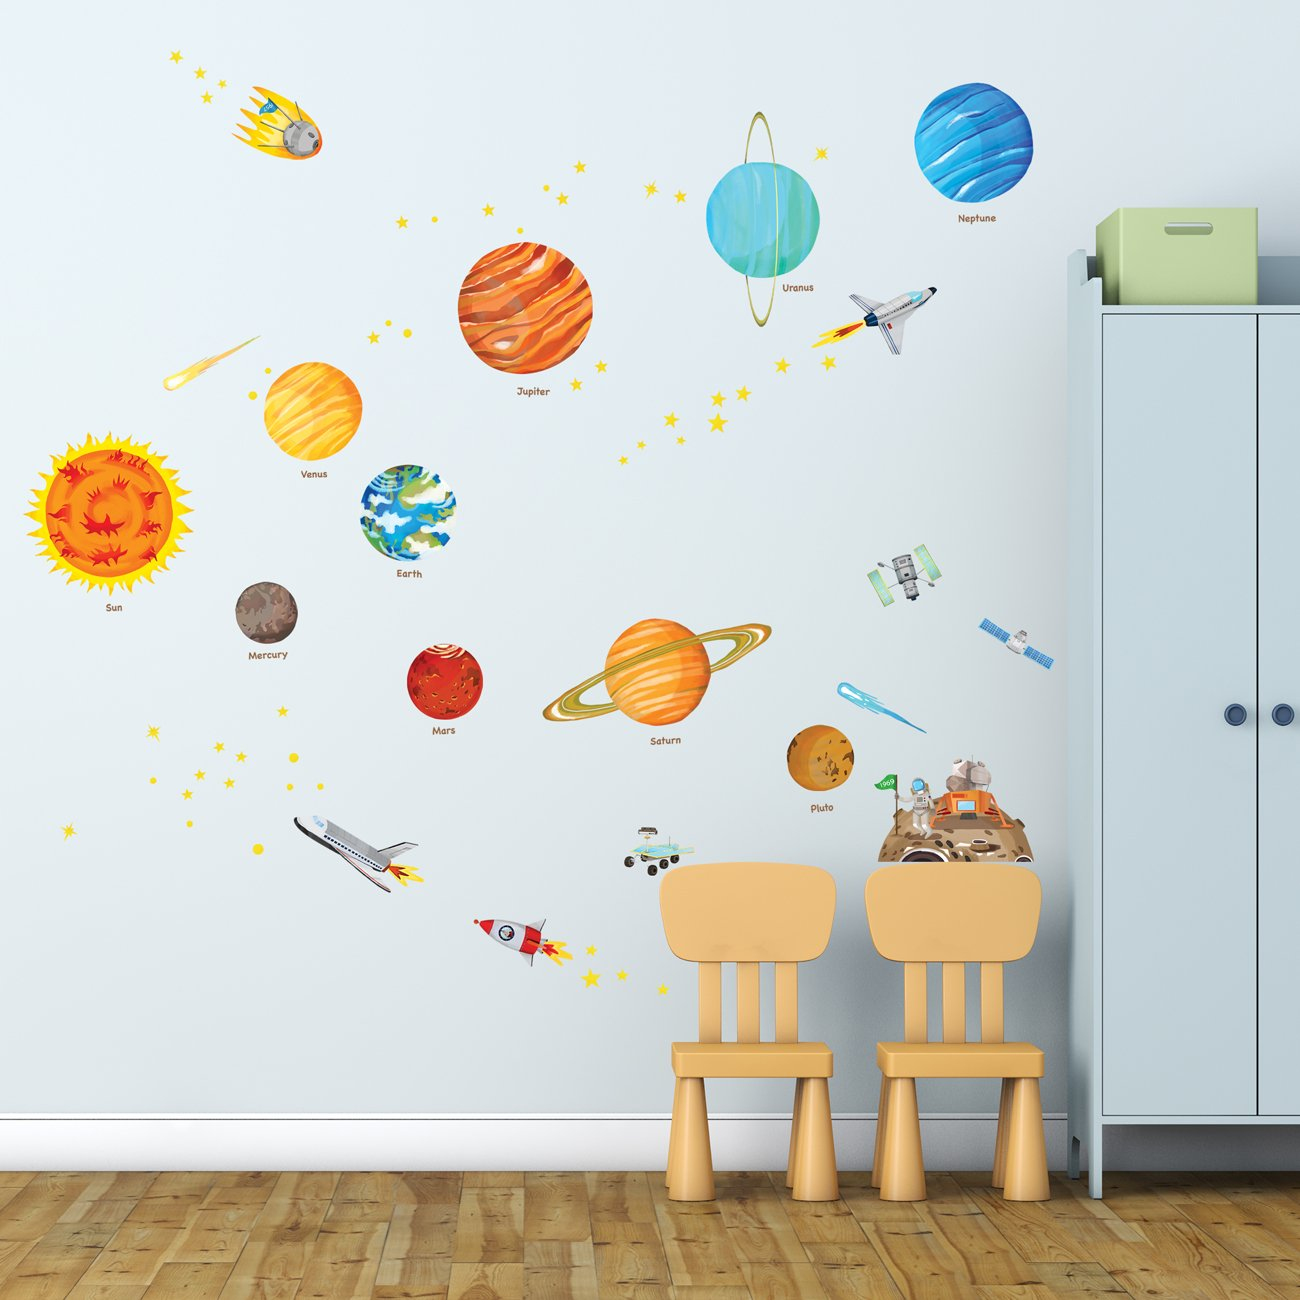 Decowall DW 1501S The Solar System Kids Wall Stickers Wall Decals Peel And  Stick Removable Wall Stickers For Kids Nursery Bedroom Living Room  (Medium): ...